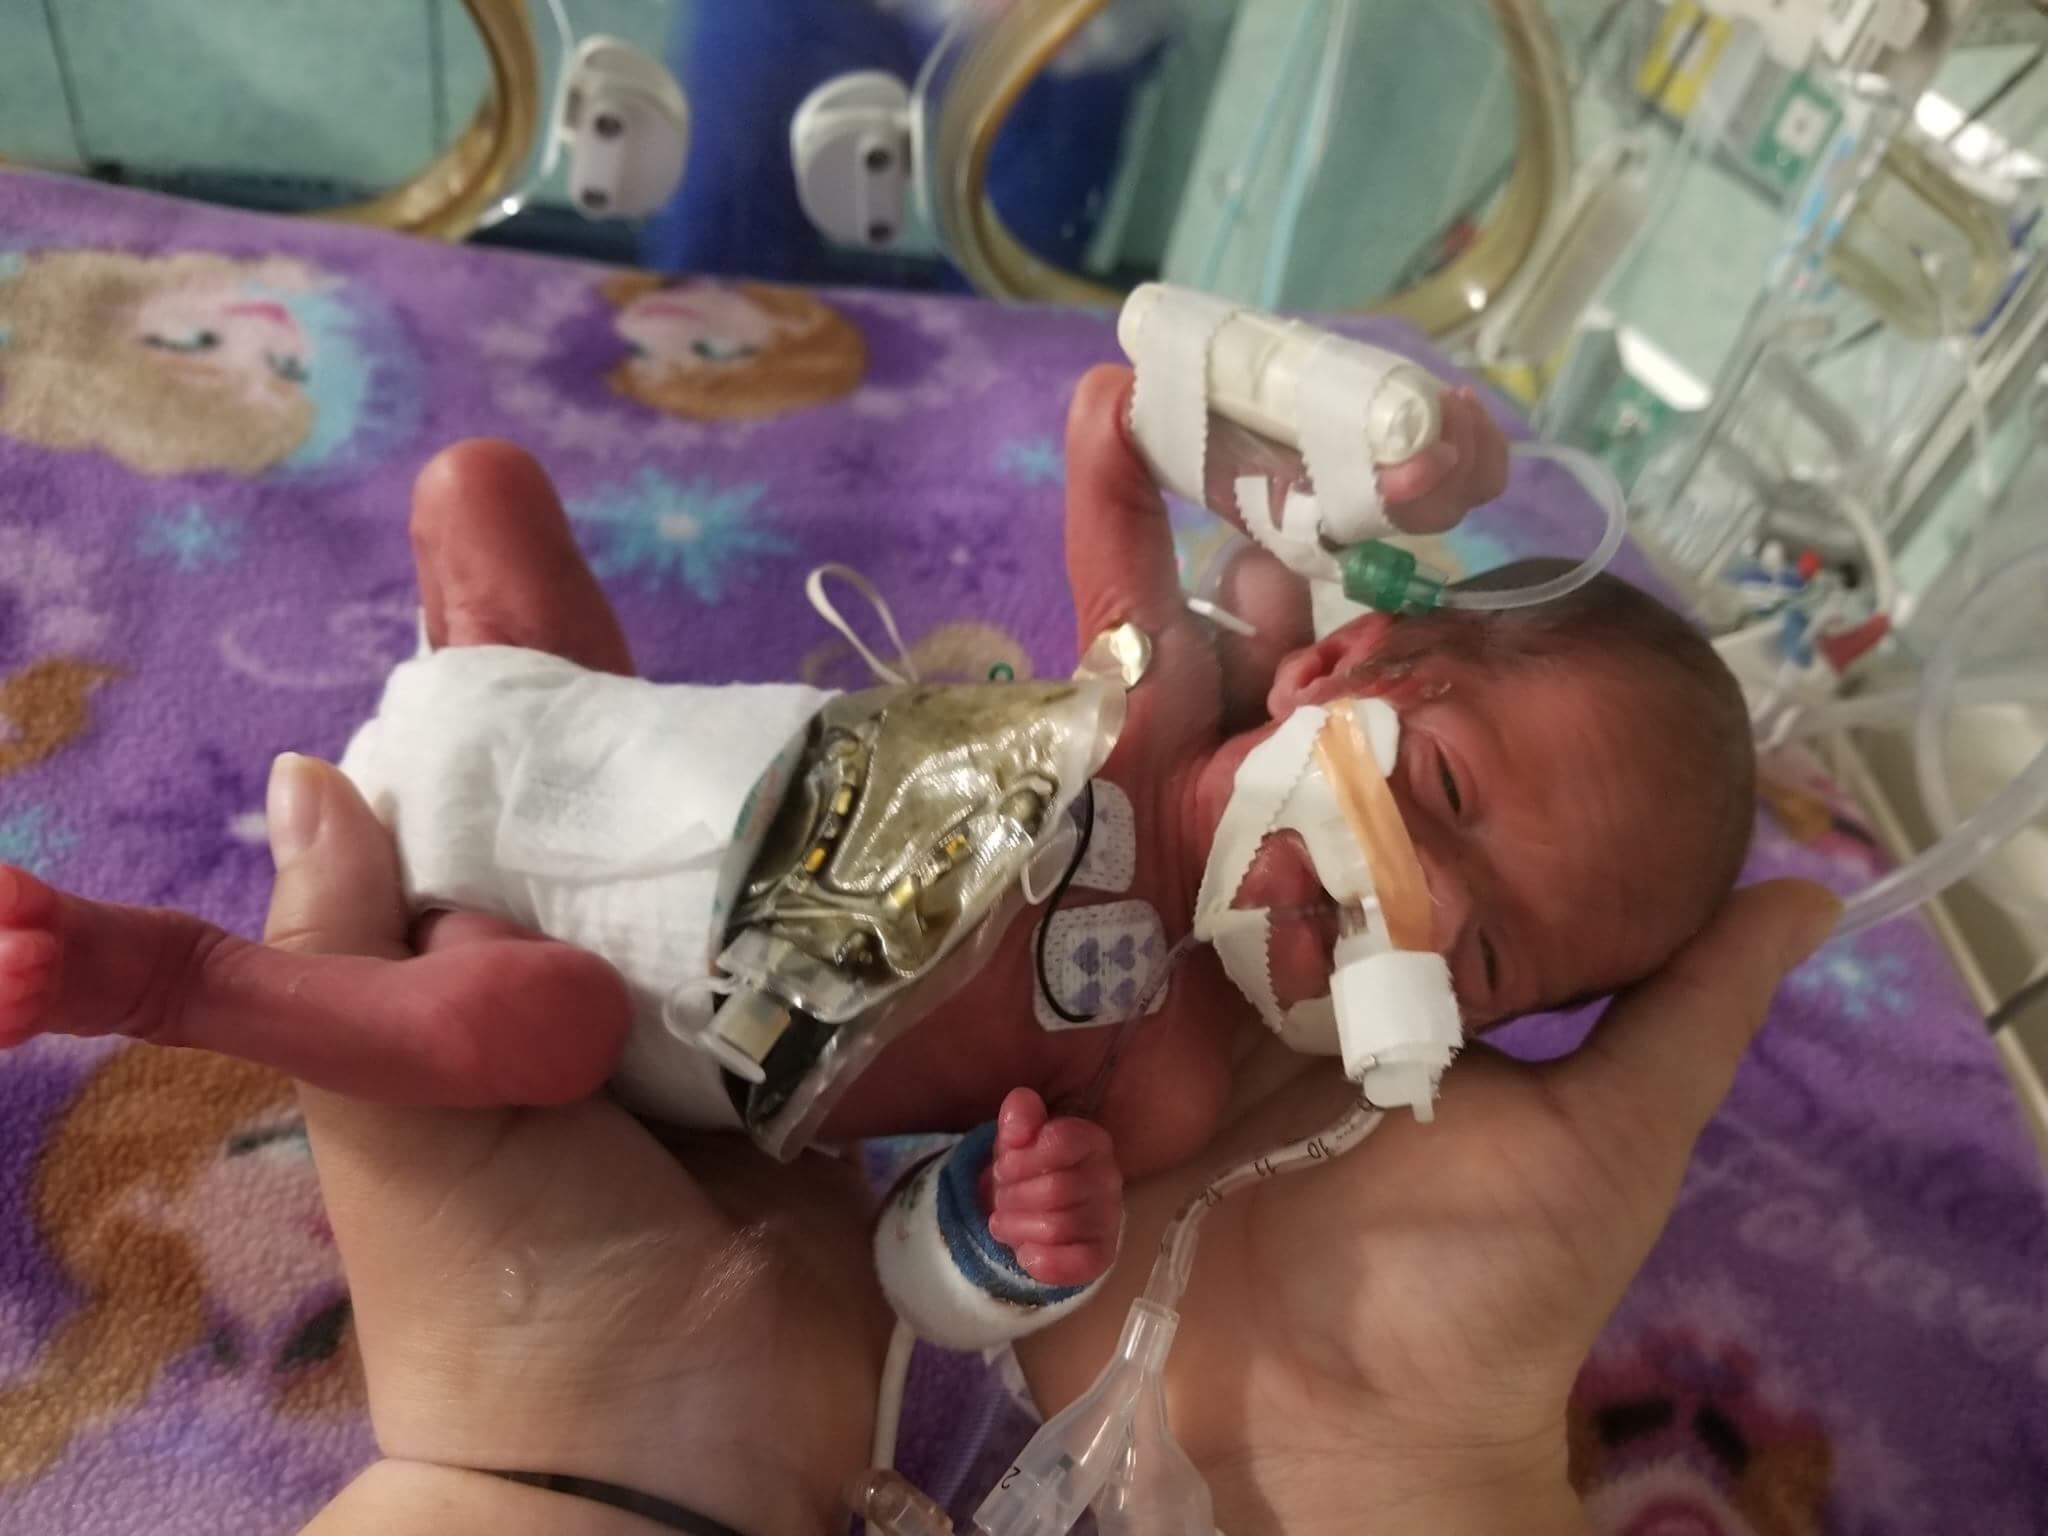 Emma early in her stay at the NICU